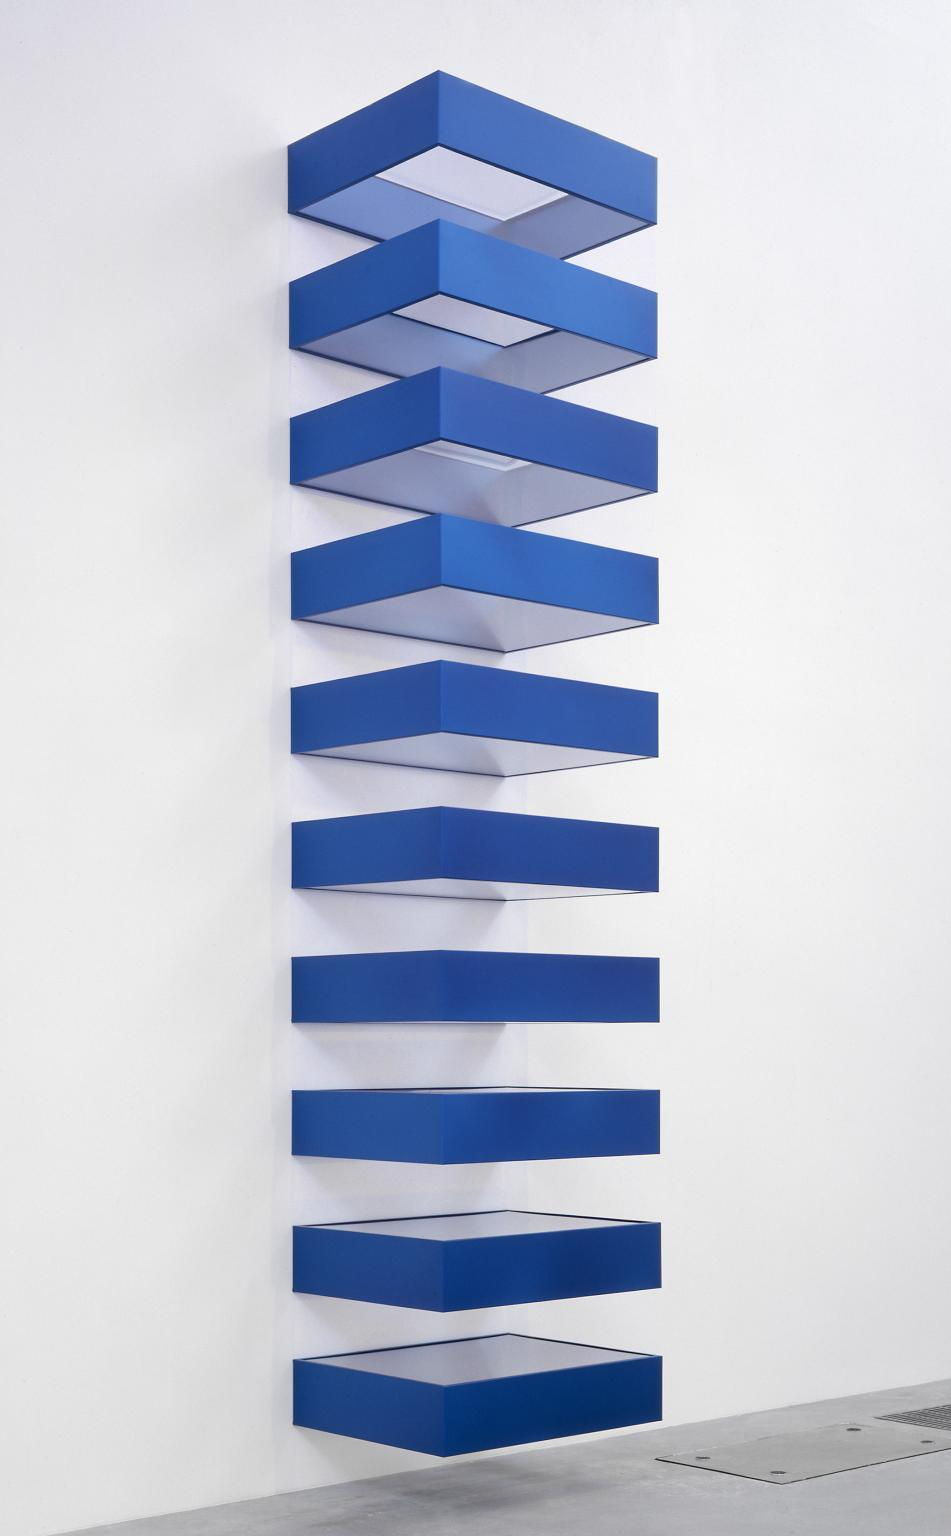 Untitled (1980) - Donald Judd